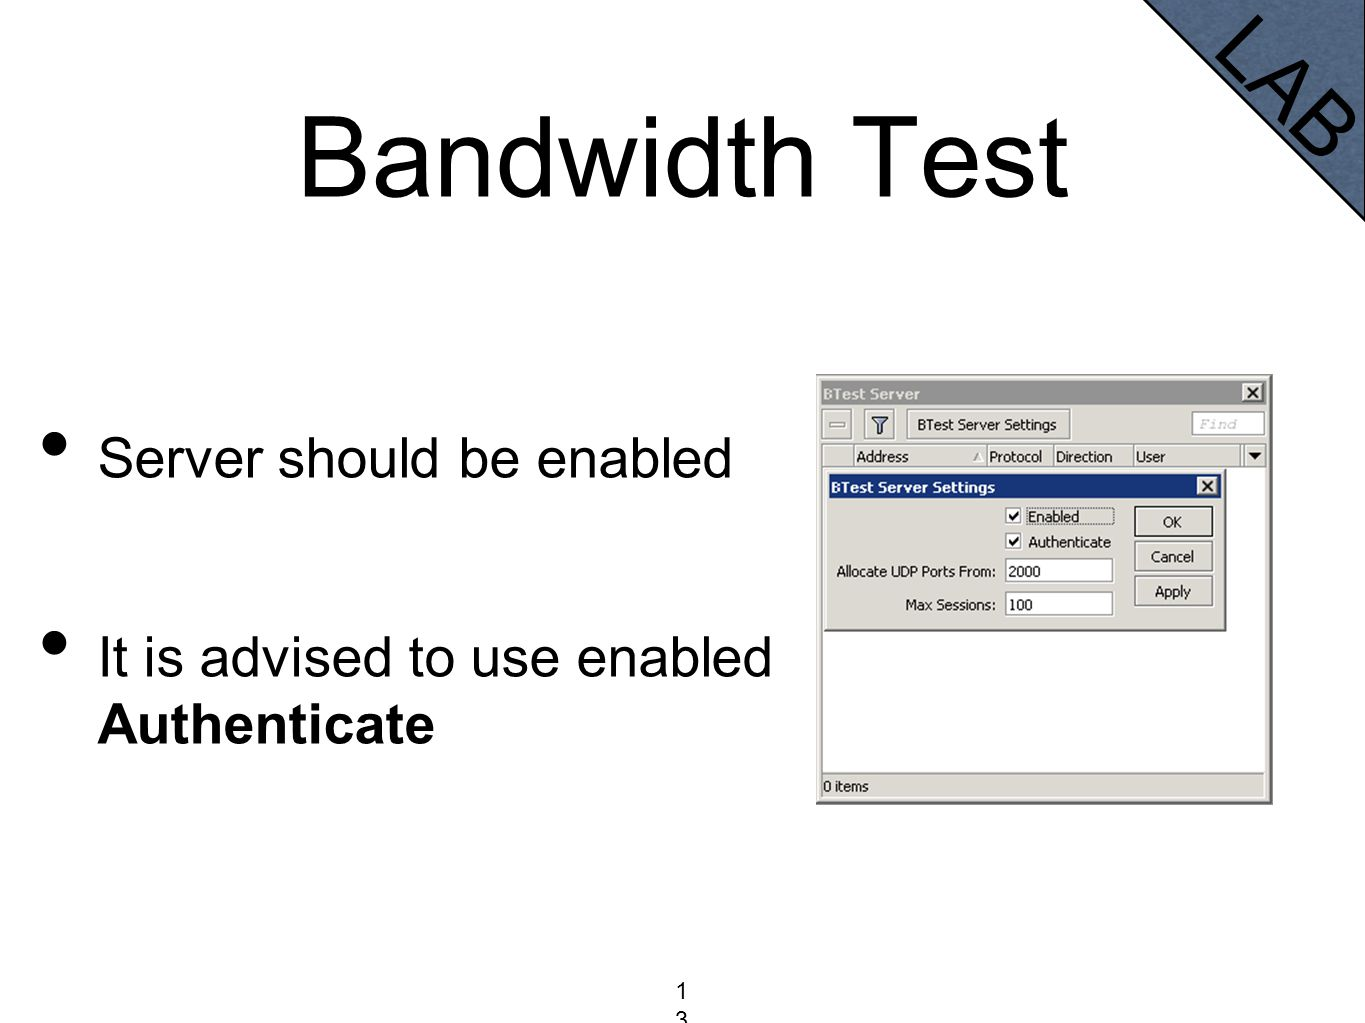 Bandwidth Test LAB 139139139 Server should be enabled It is advised to use enabled Authenticate